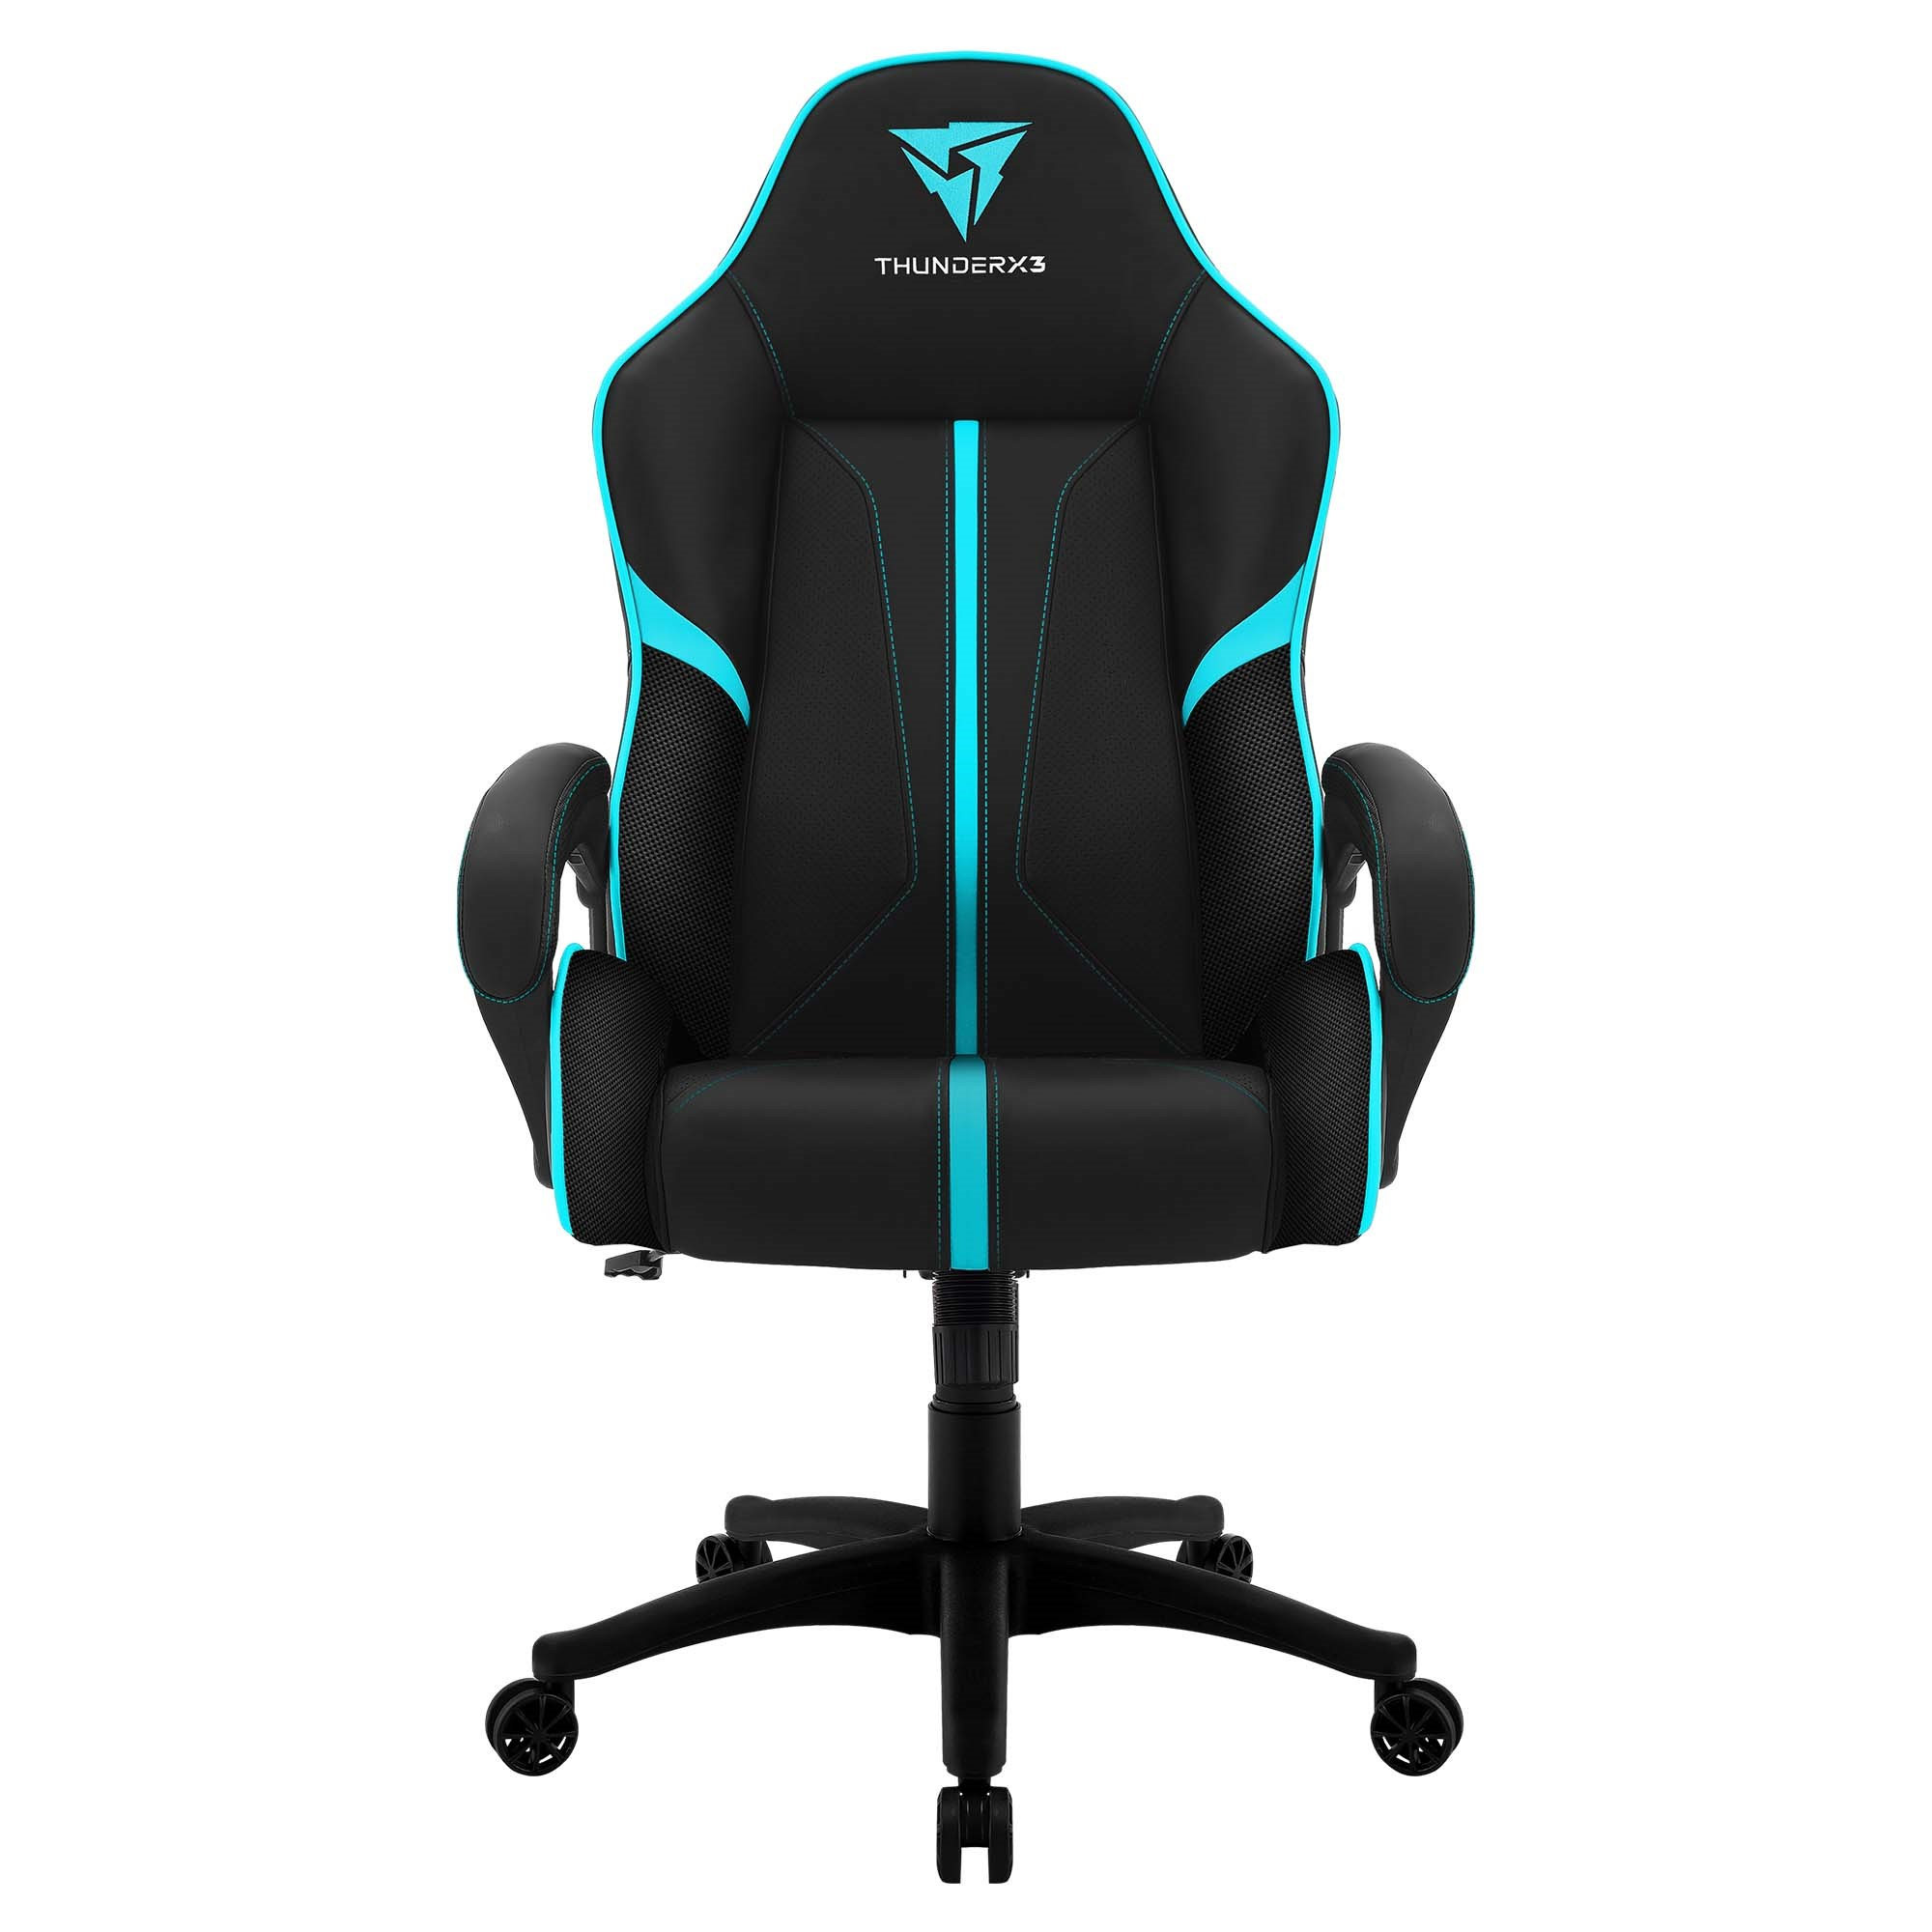 ThunderX3 BC1, Chair Gaming Ergonomic, Synthetic Leather, Technology AIR, Adjustable Height, Cyan